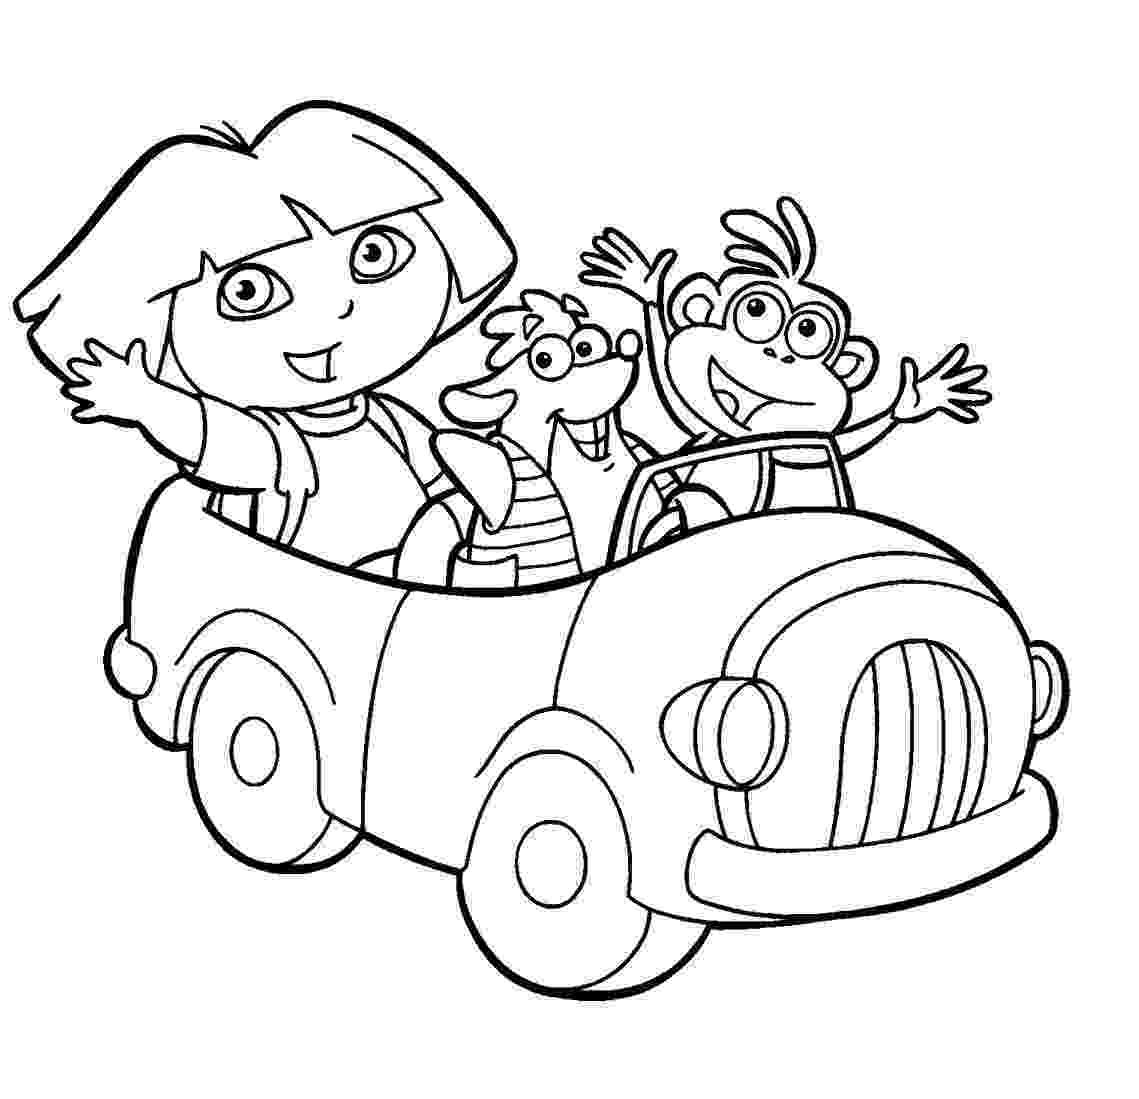 print dora coloring pages dora coloring pages free printables momjunction dora print pages coloring